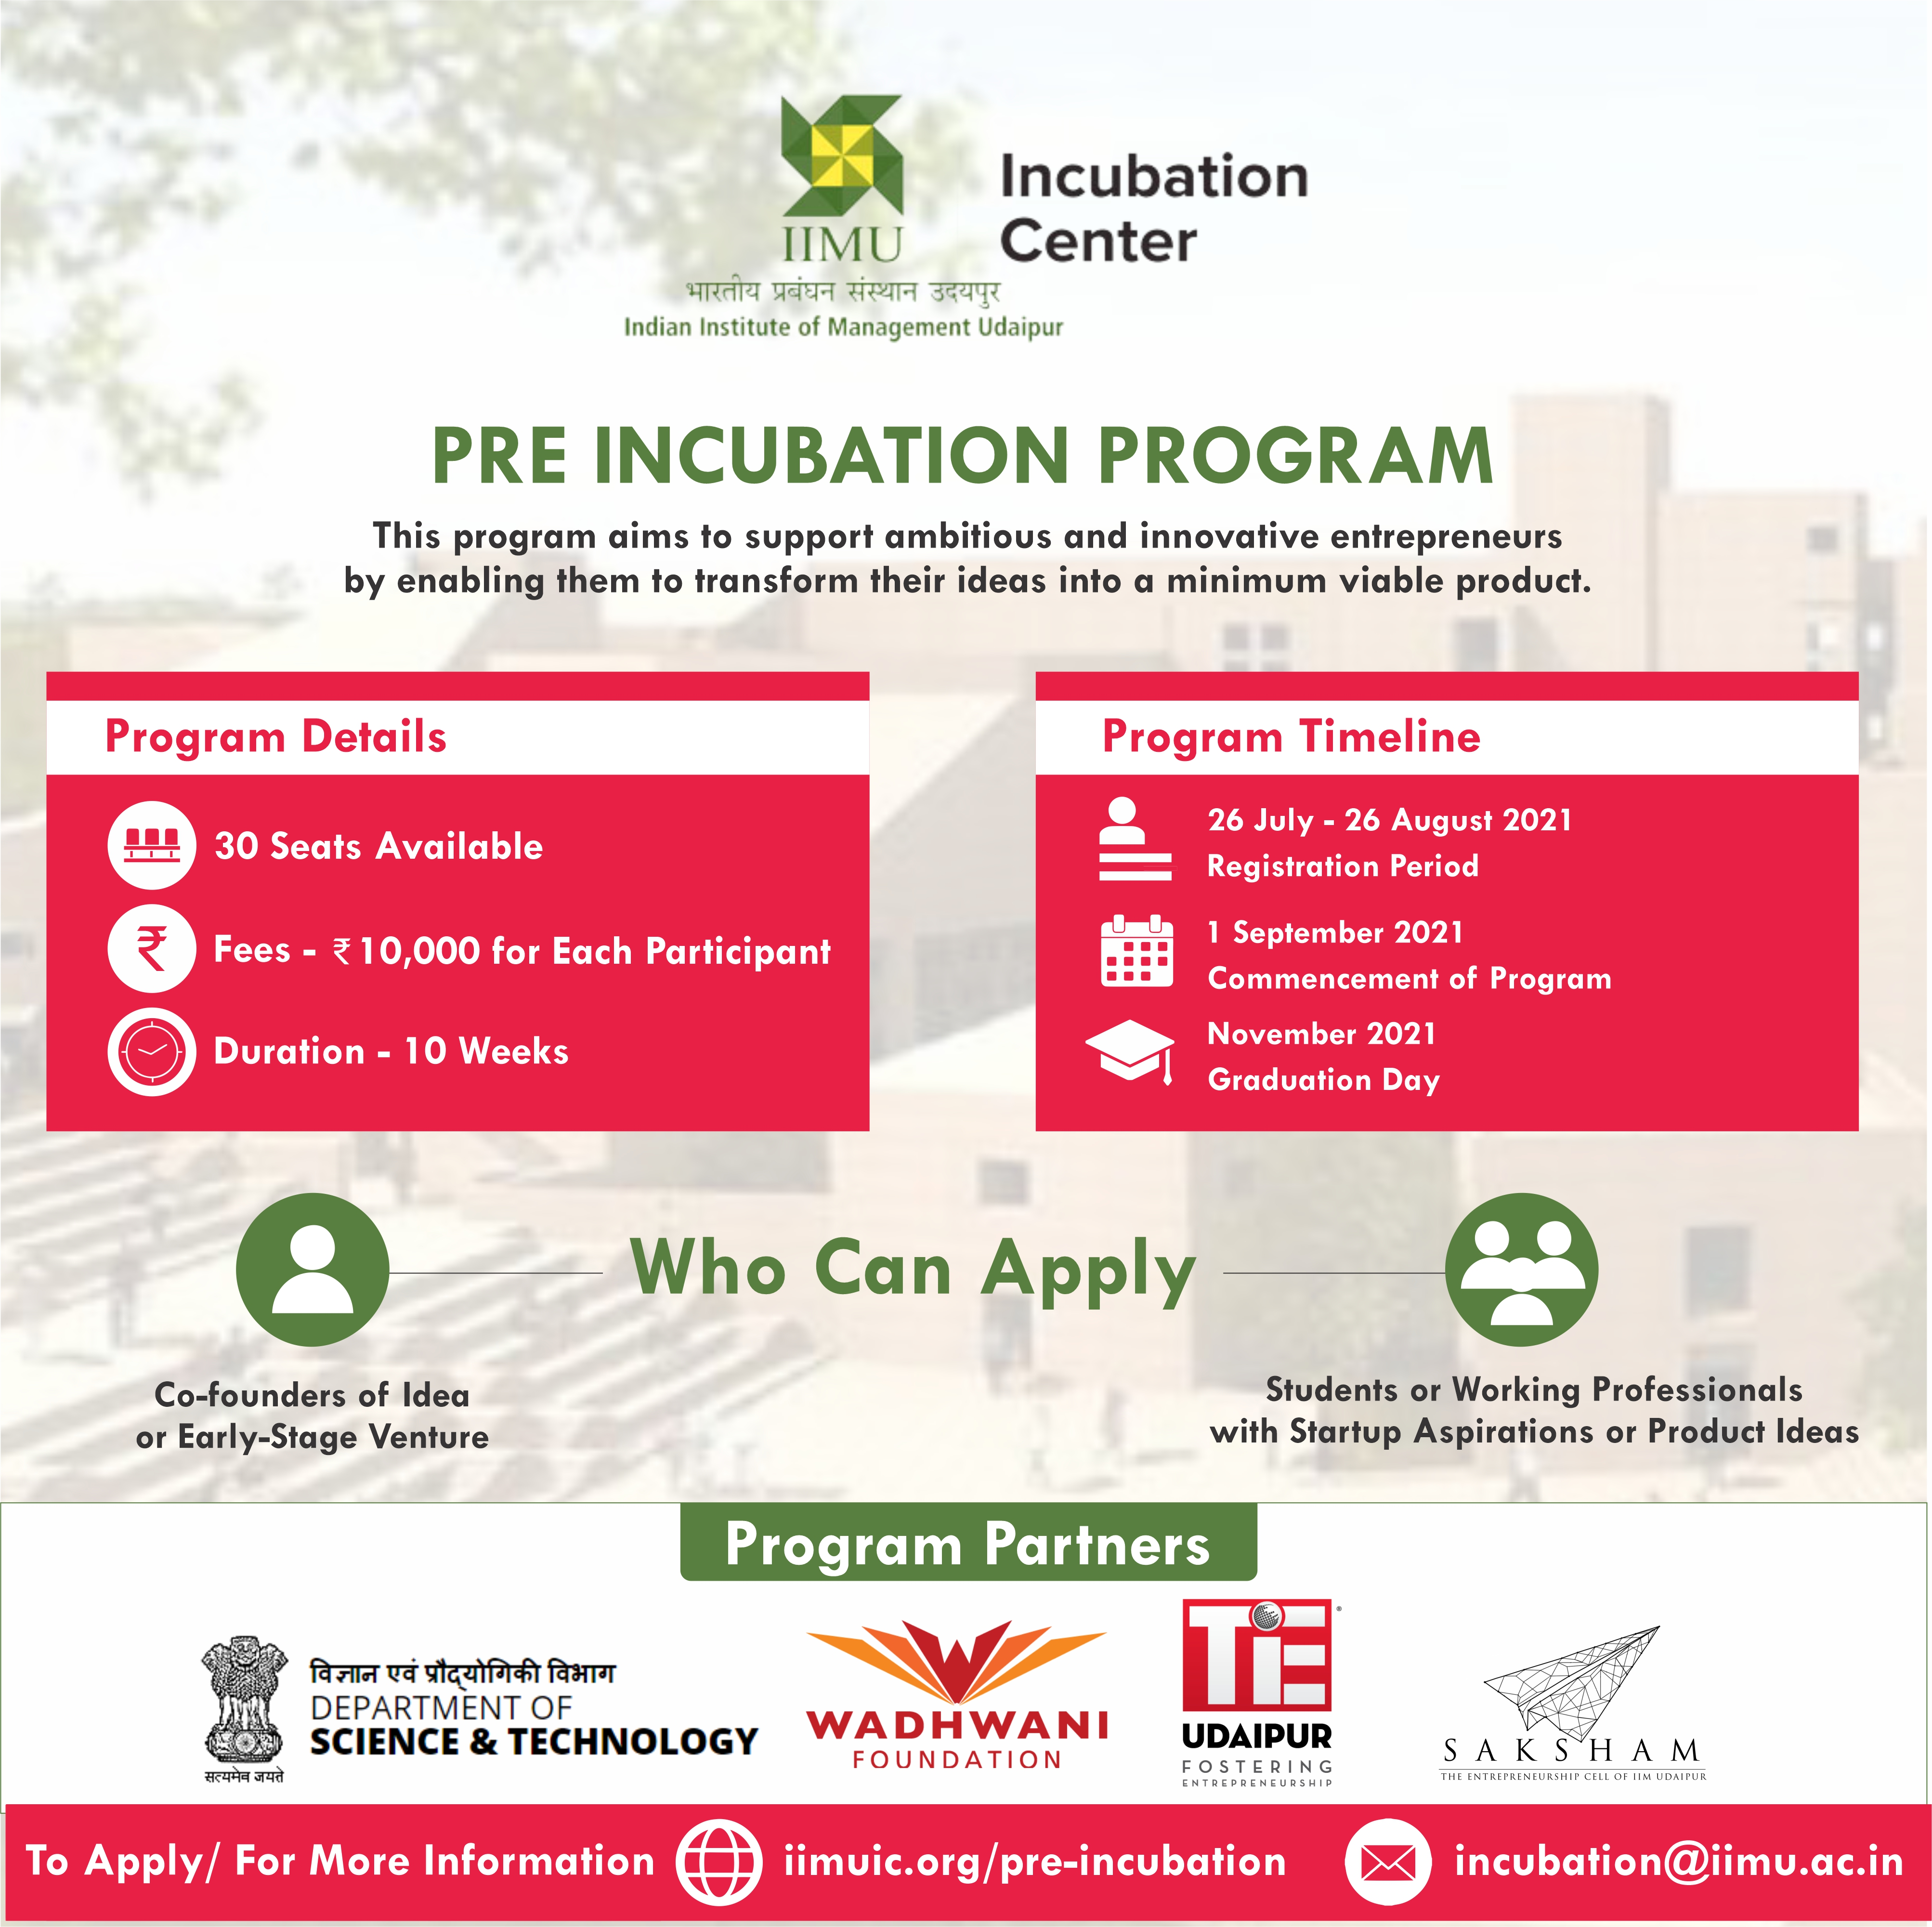 IIMU Incubation Center launches second edition of its Pre-Incubation Program